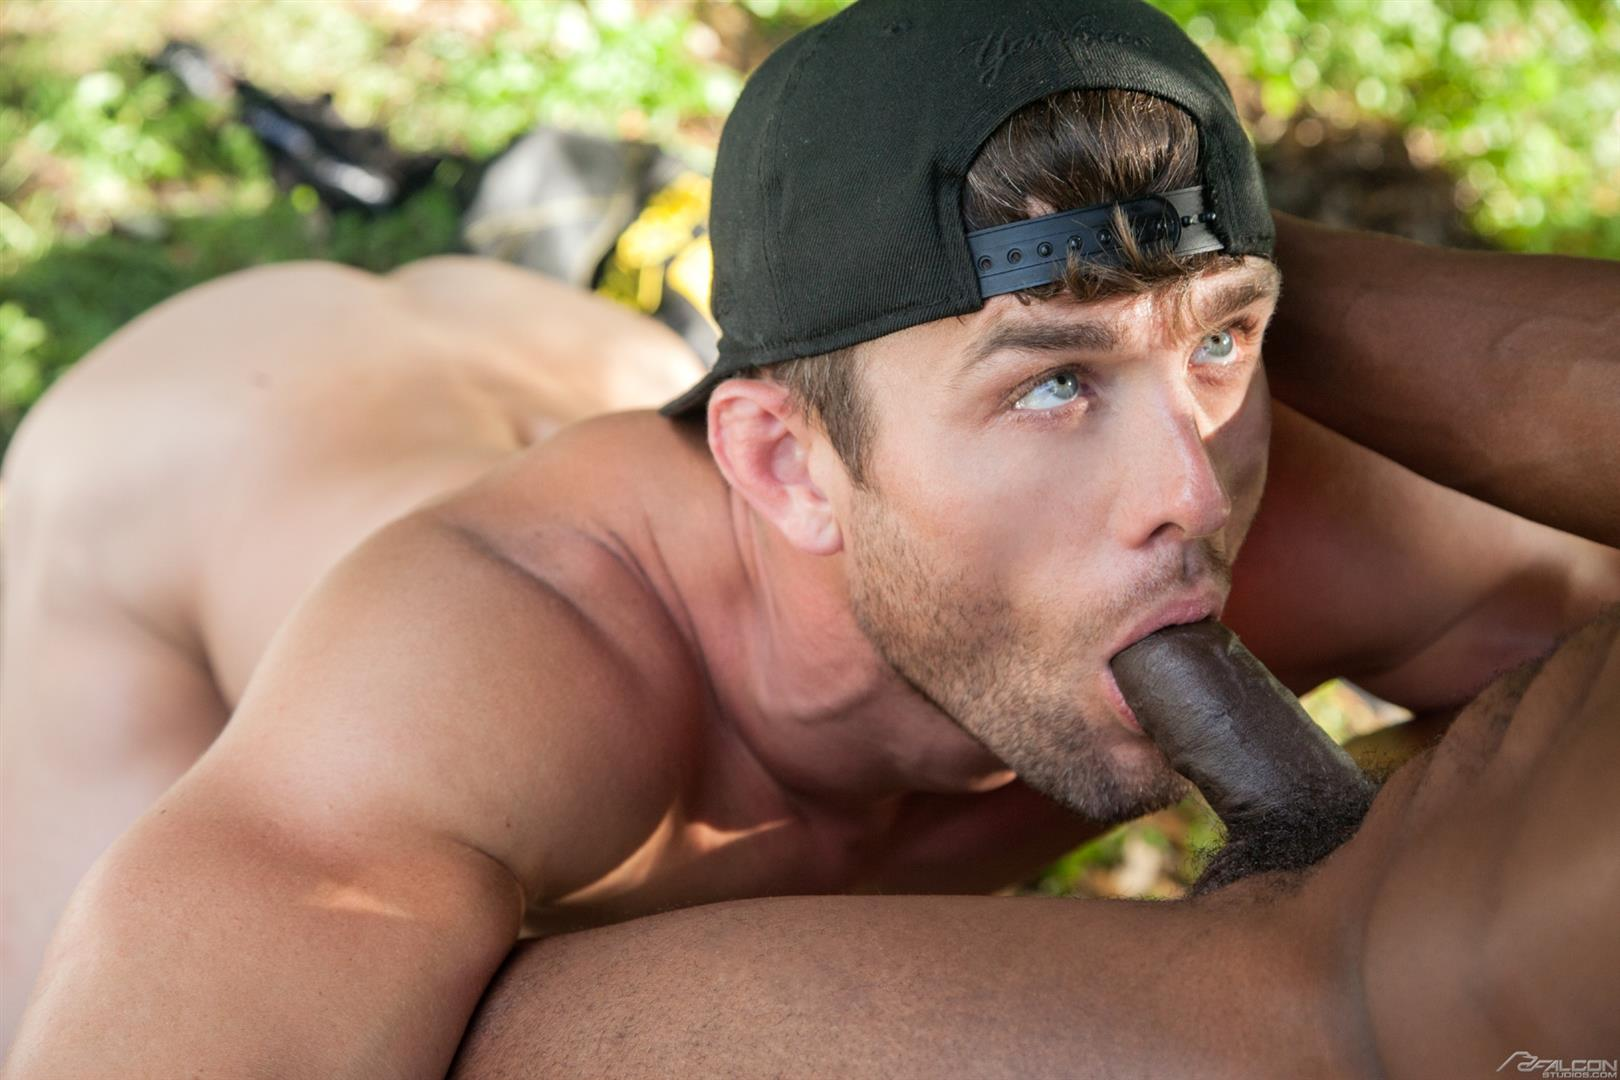 Falcon-Studios-Ryan-Rose-and-Pheonix-Fellington-Big-Dick-Interracial-Gay-Sex-Video-07 Ryan Rose and Pheonix Fellington Outdoor Grudge Fuck